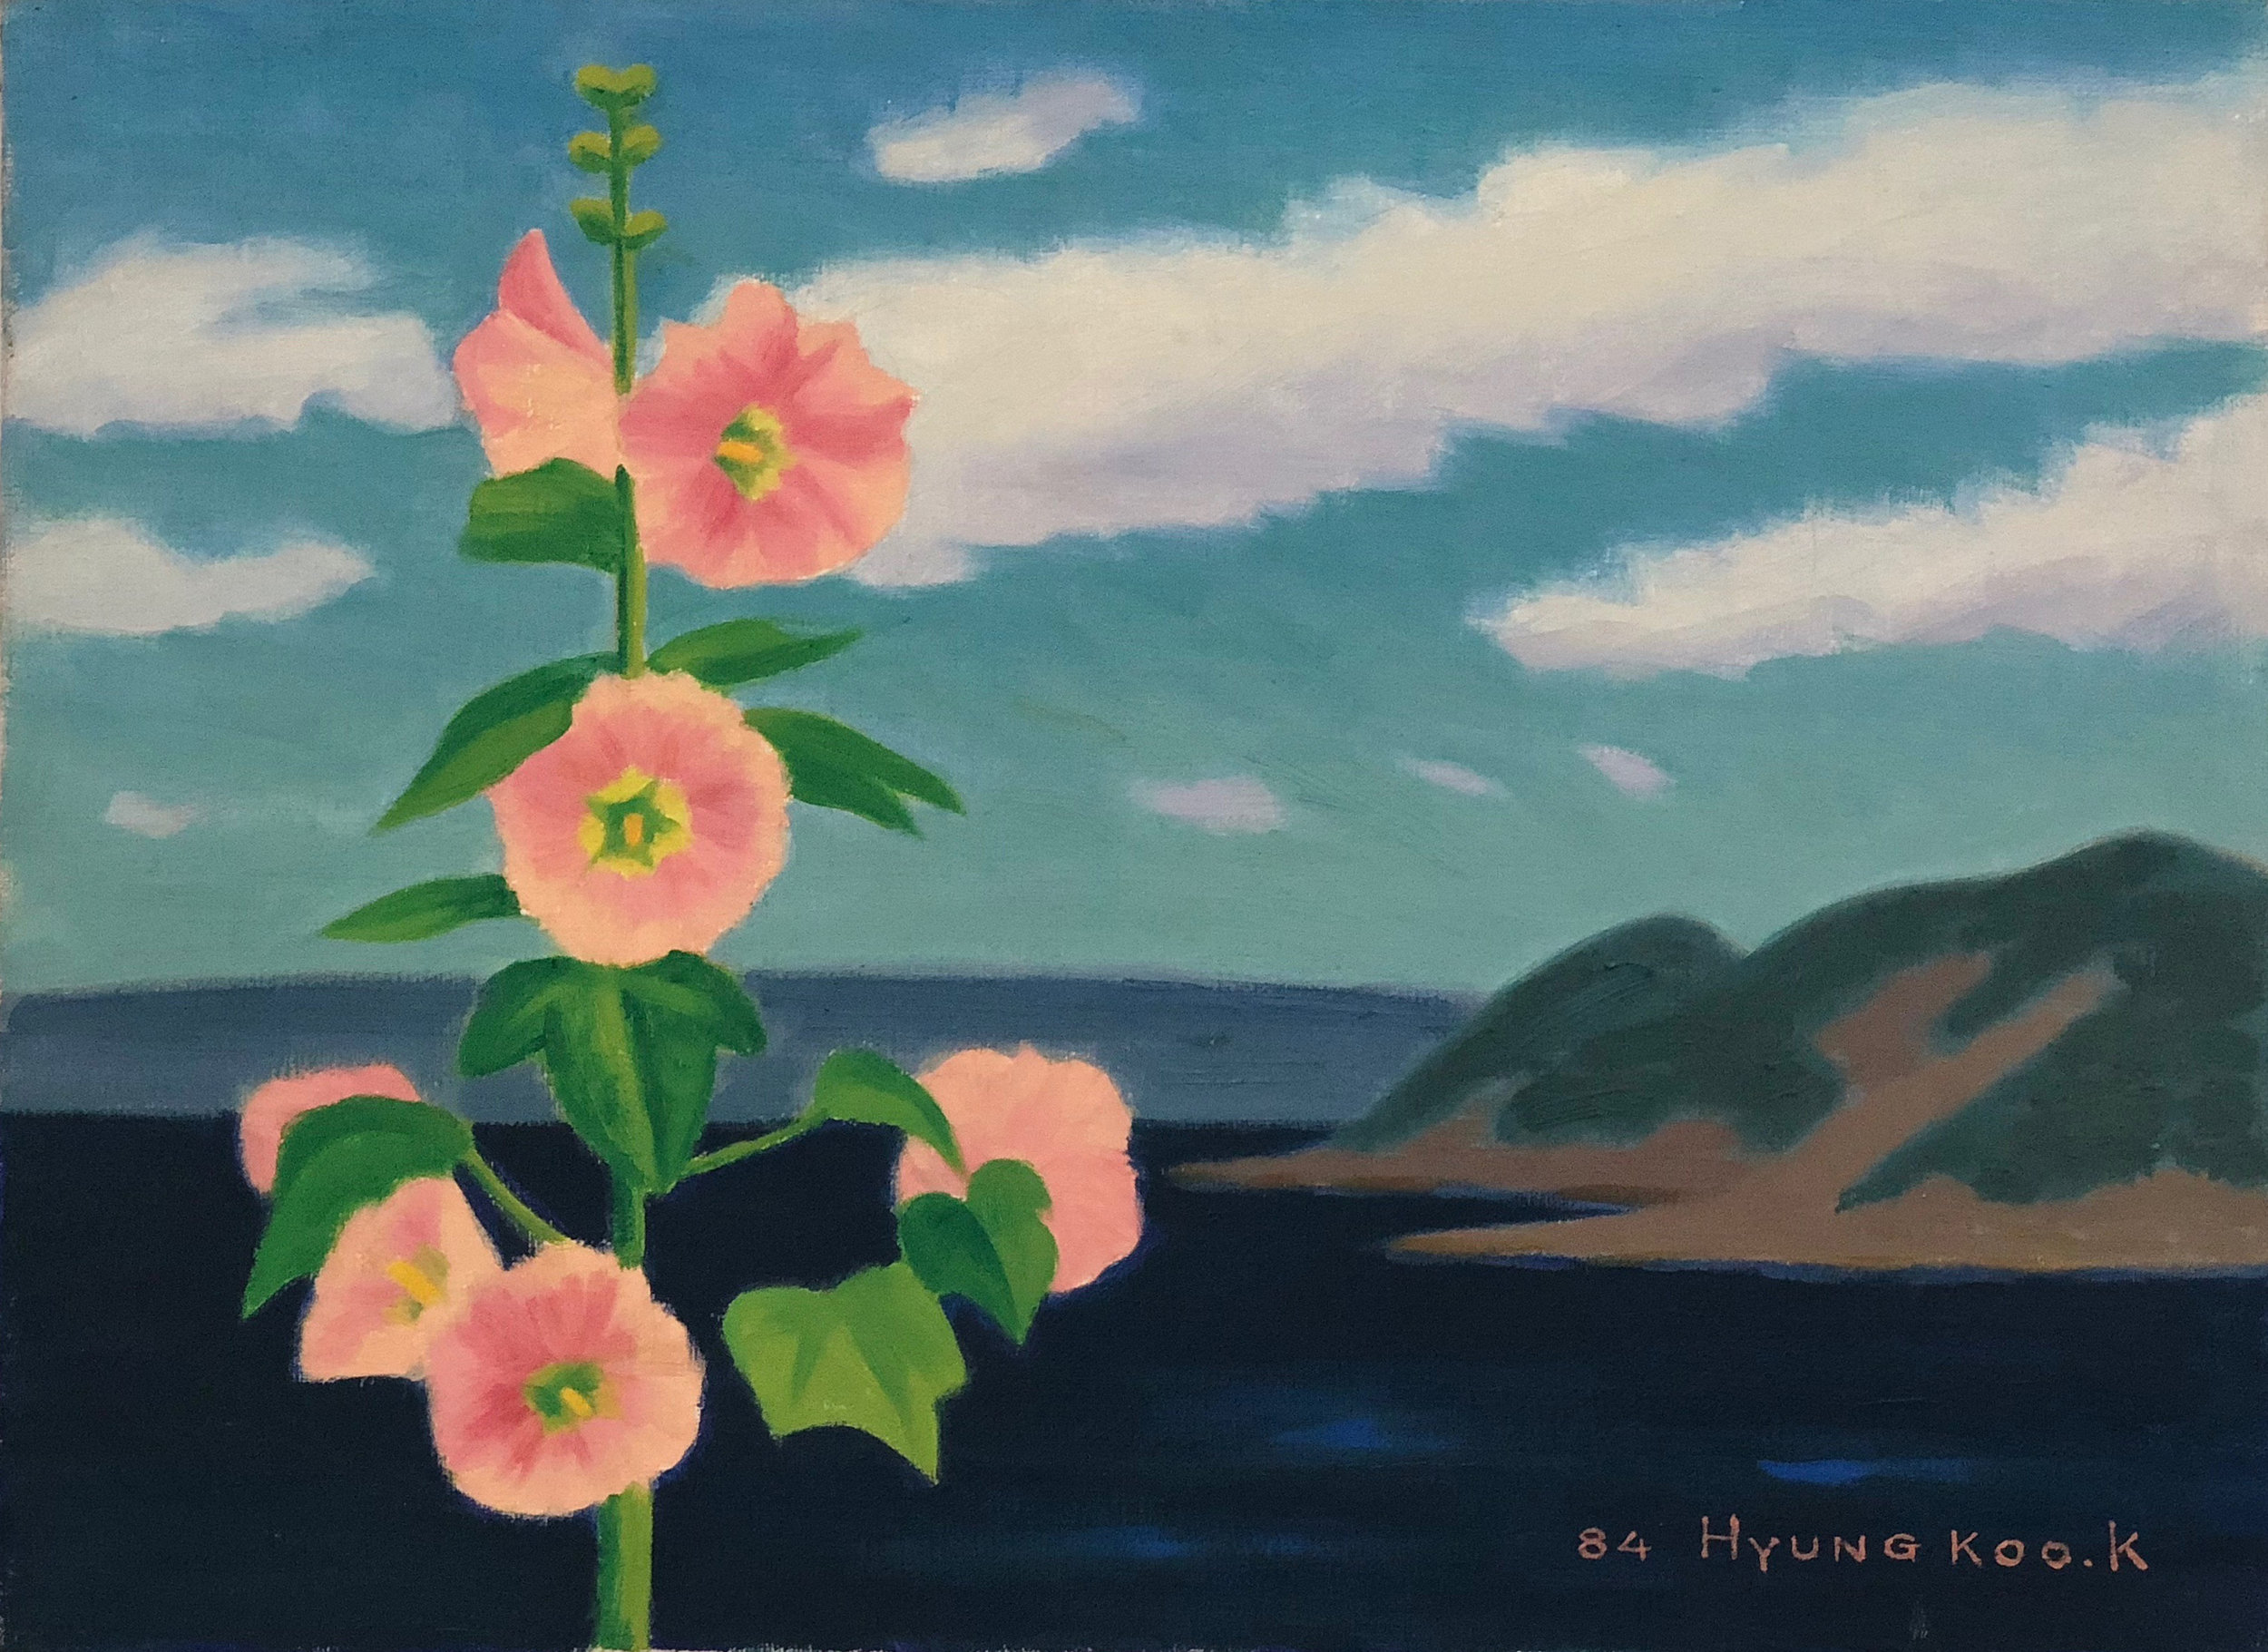 Flower, Cloud, and Sea, 1984